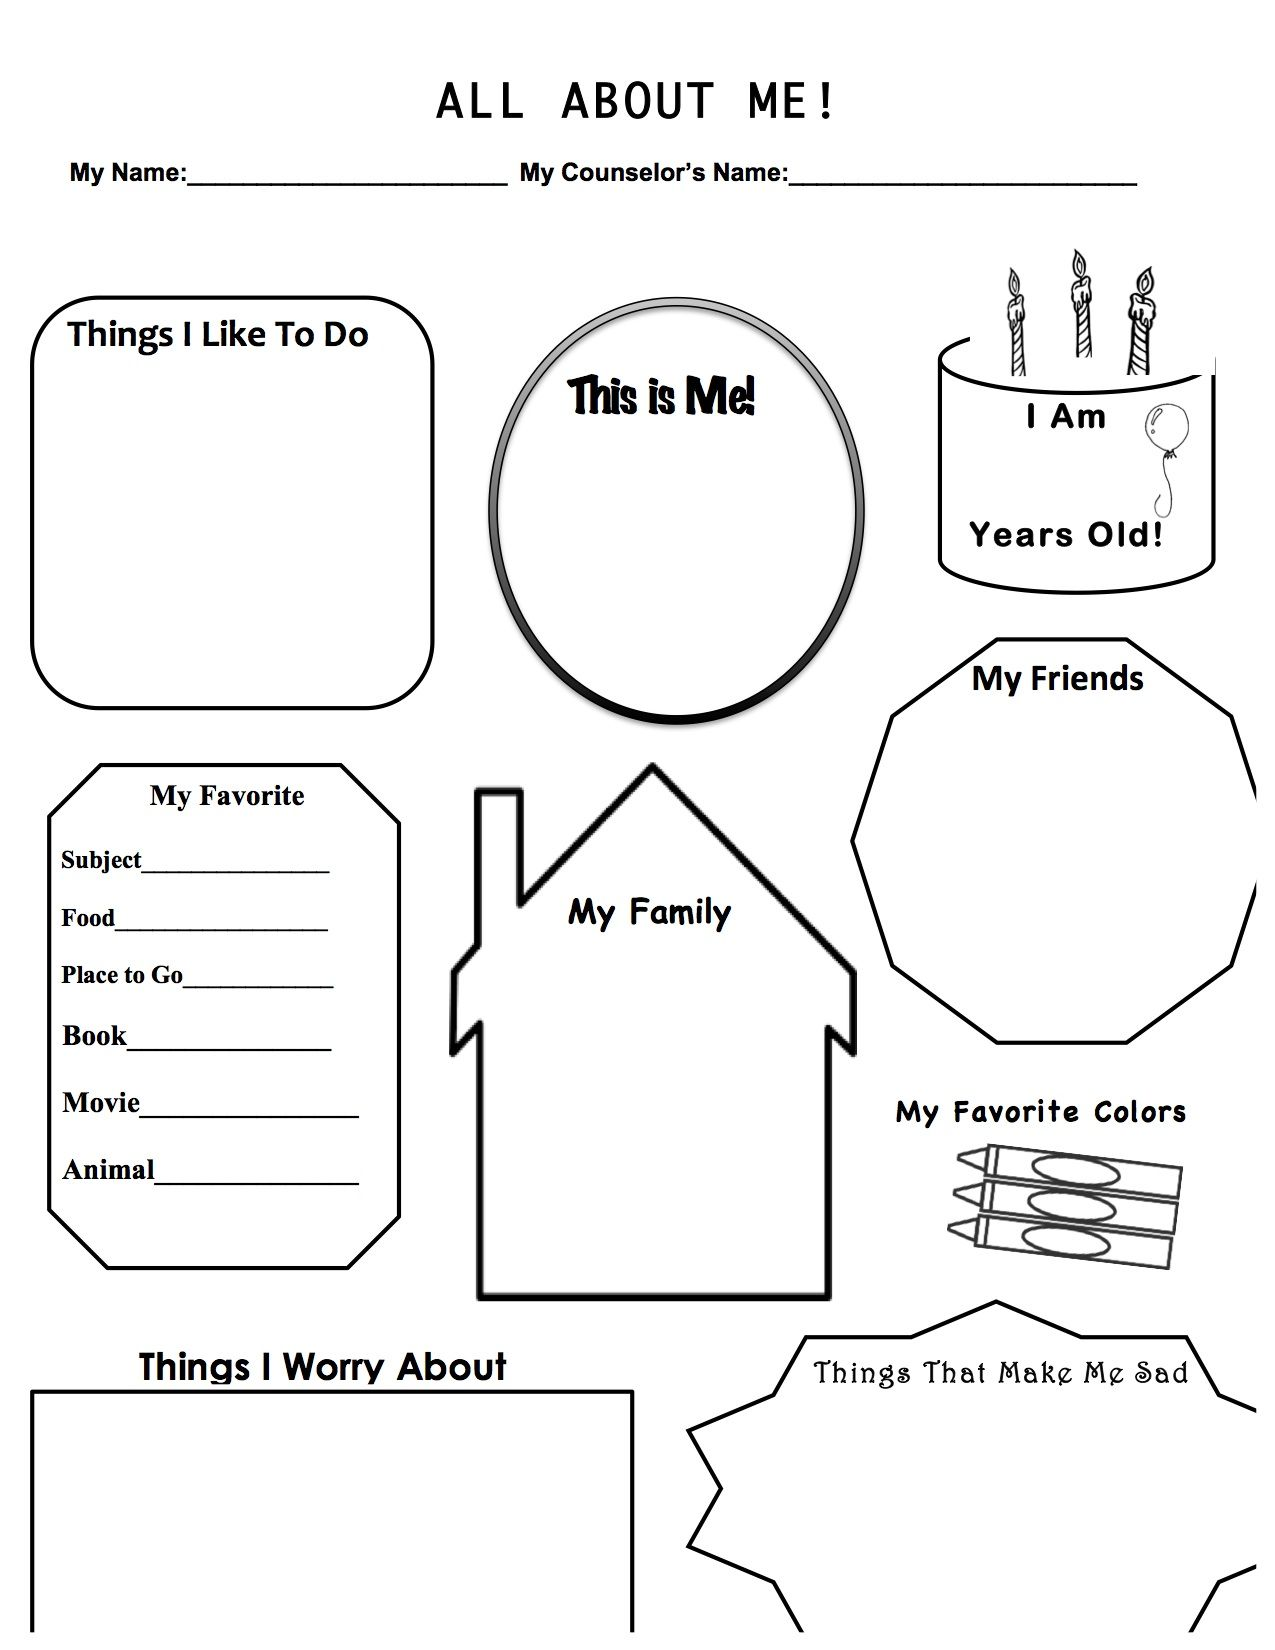 This Is A Work Sheet I Designed For When I Have A First Therapy Session With A Child It Allows For Me Bu Counseling Kids Therapy Worksheets Adolescent Therapy